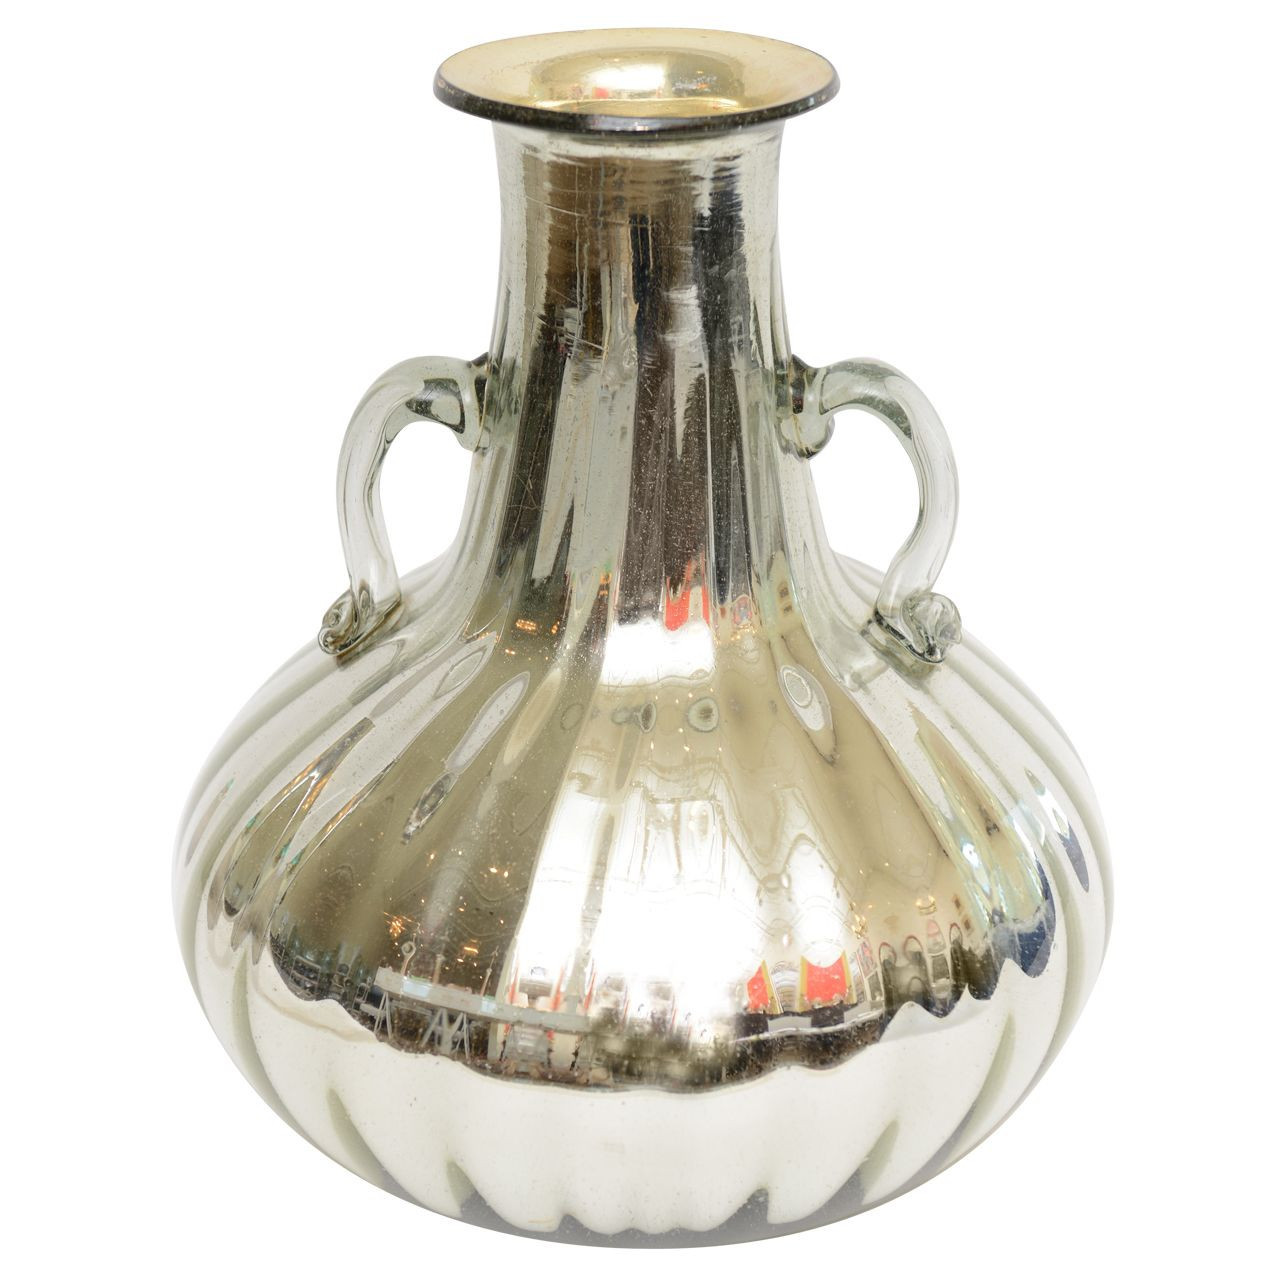 glass vase manufacturers usa of stock of silver glass vases vases artificial plants collection pertaining to silver glass vases gallery mercury silver over glass monumental bottle or jug of stock of silver